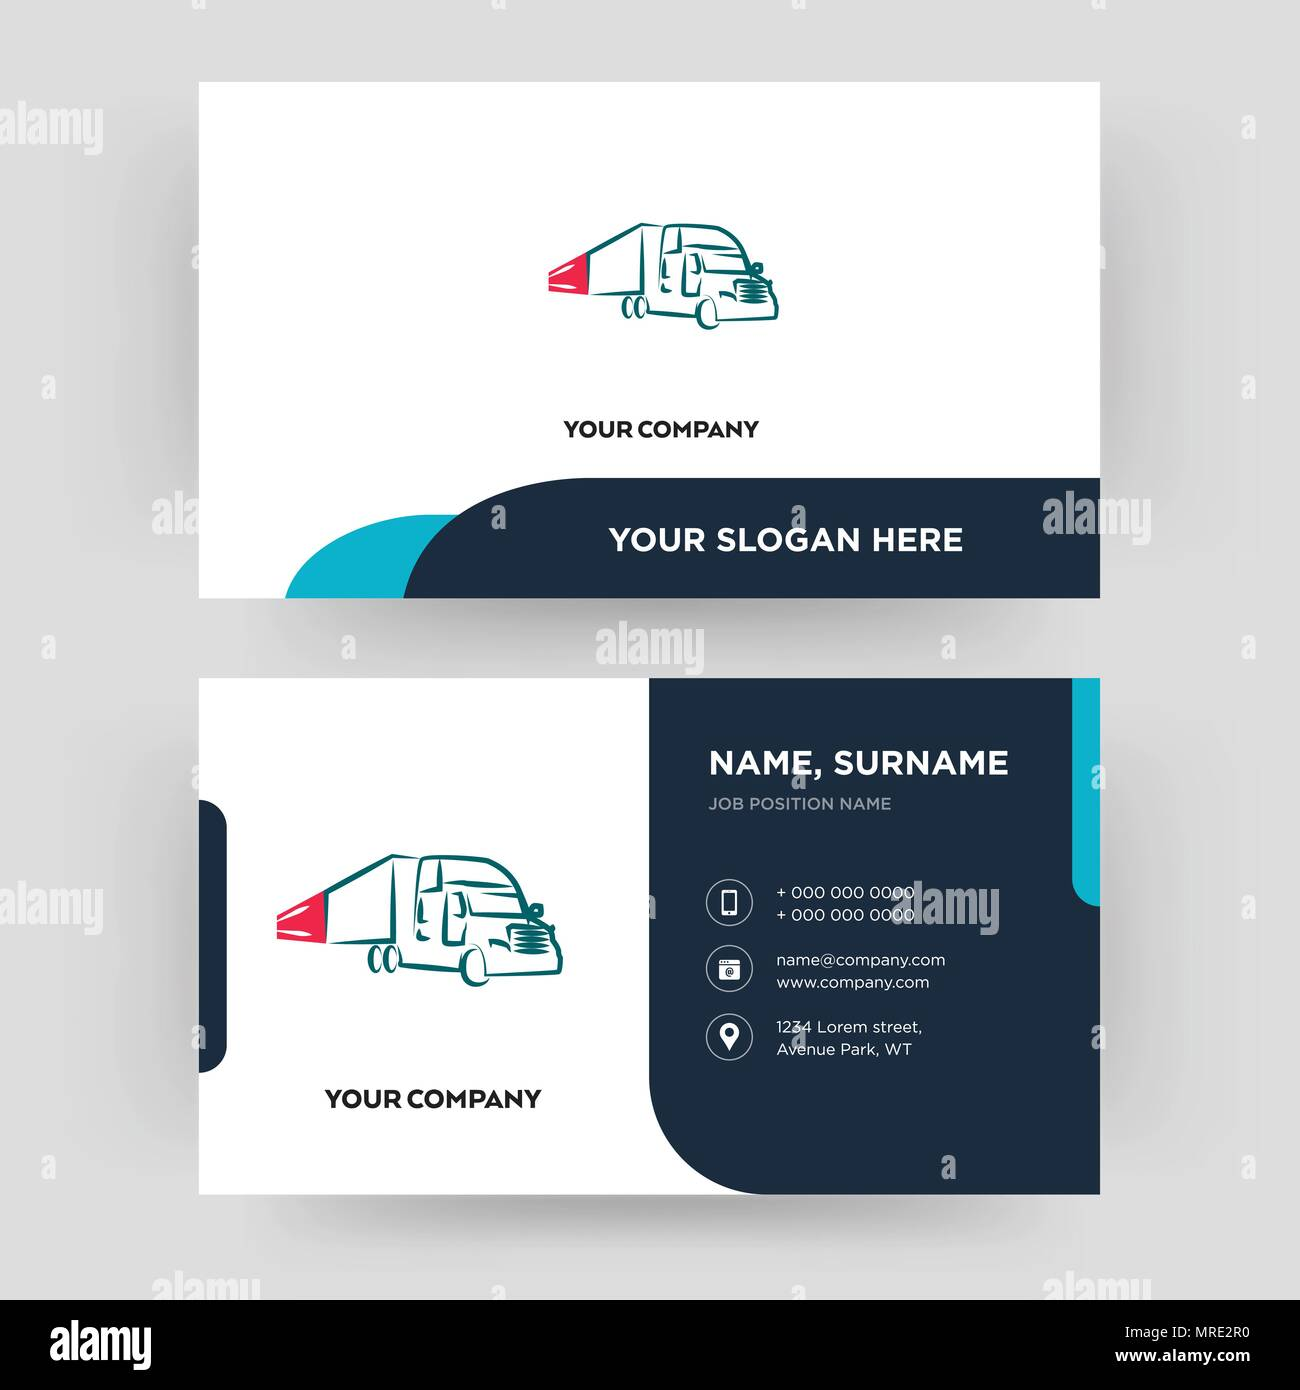 Truck company business card design template visiting for your truck company business card design template visiting for your company modern creative and clean identity card vector reheart Images